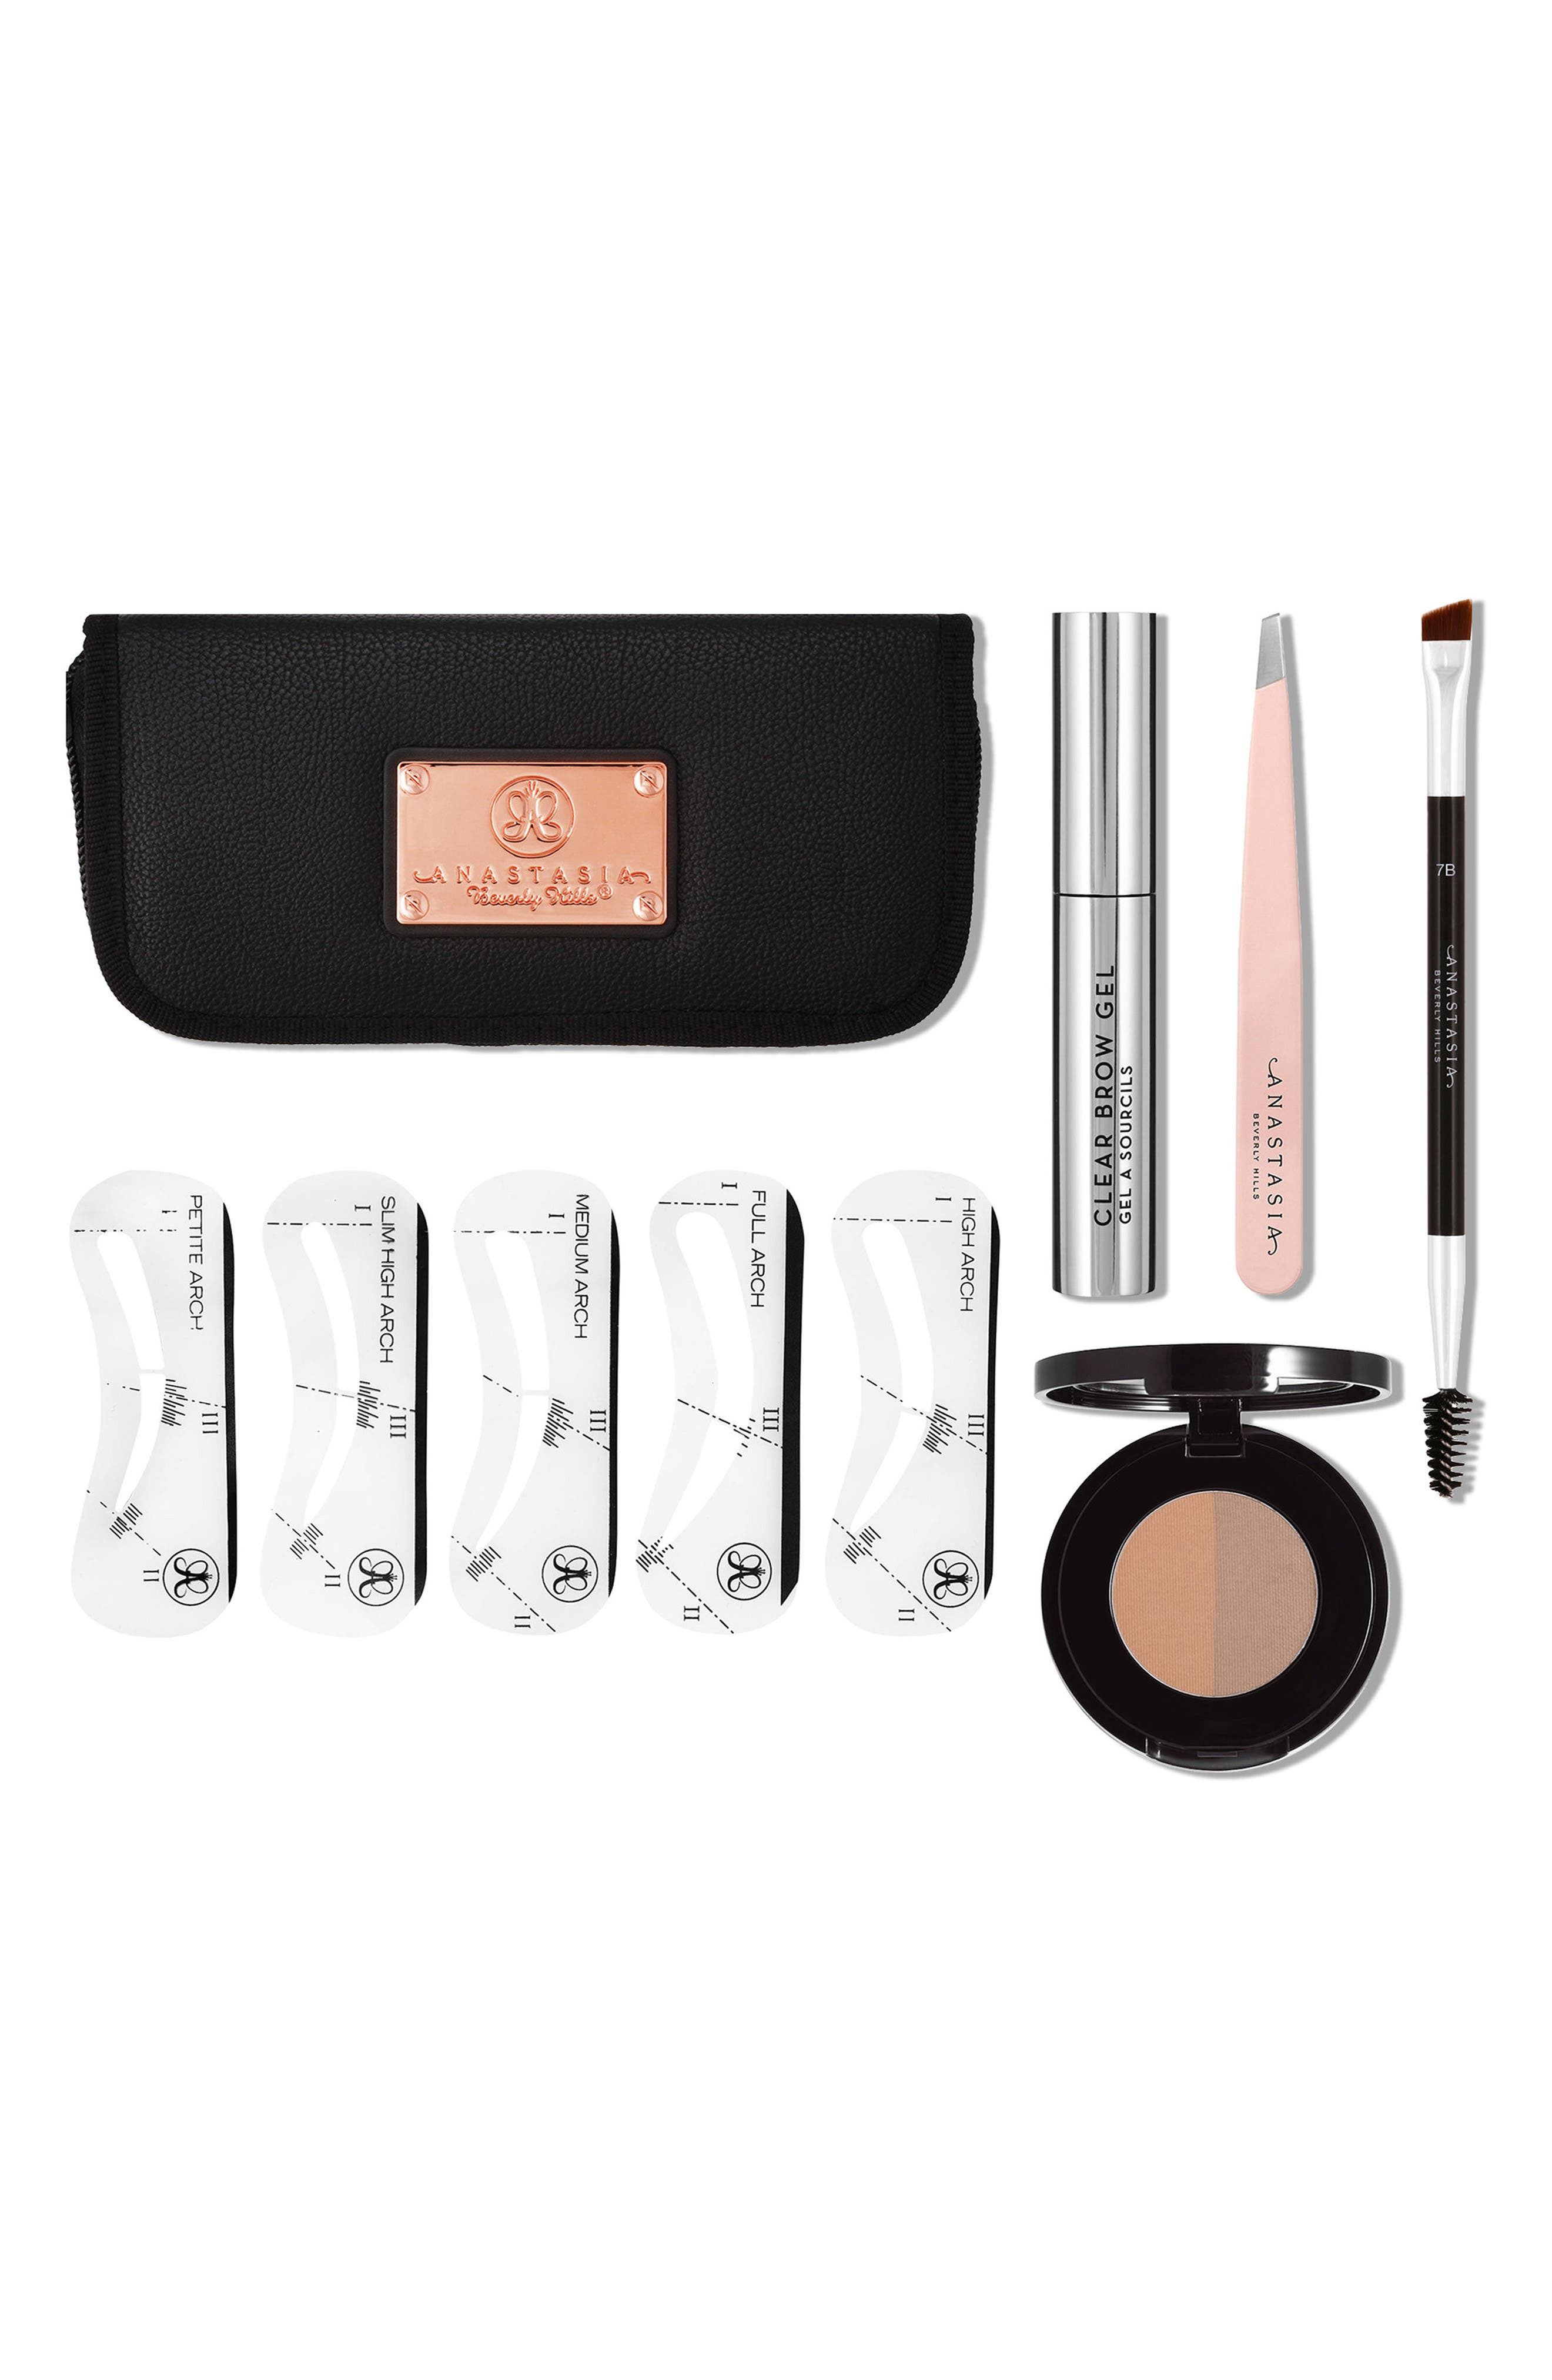 Main Image - Anastasia Beverly Hills Five Item Brow Kit ($120 Value)